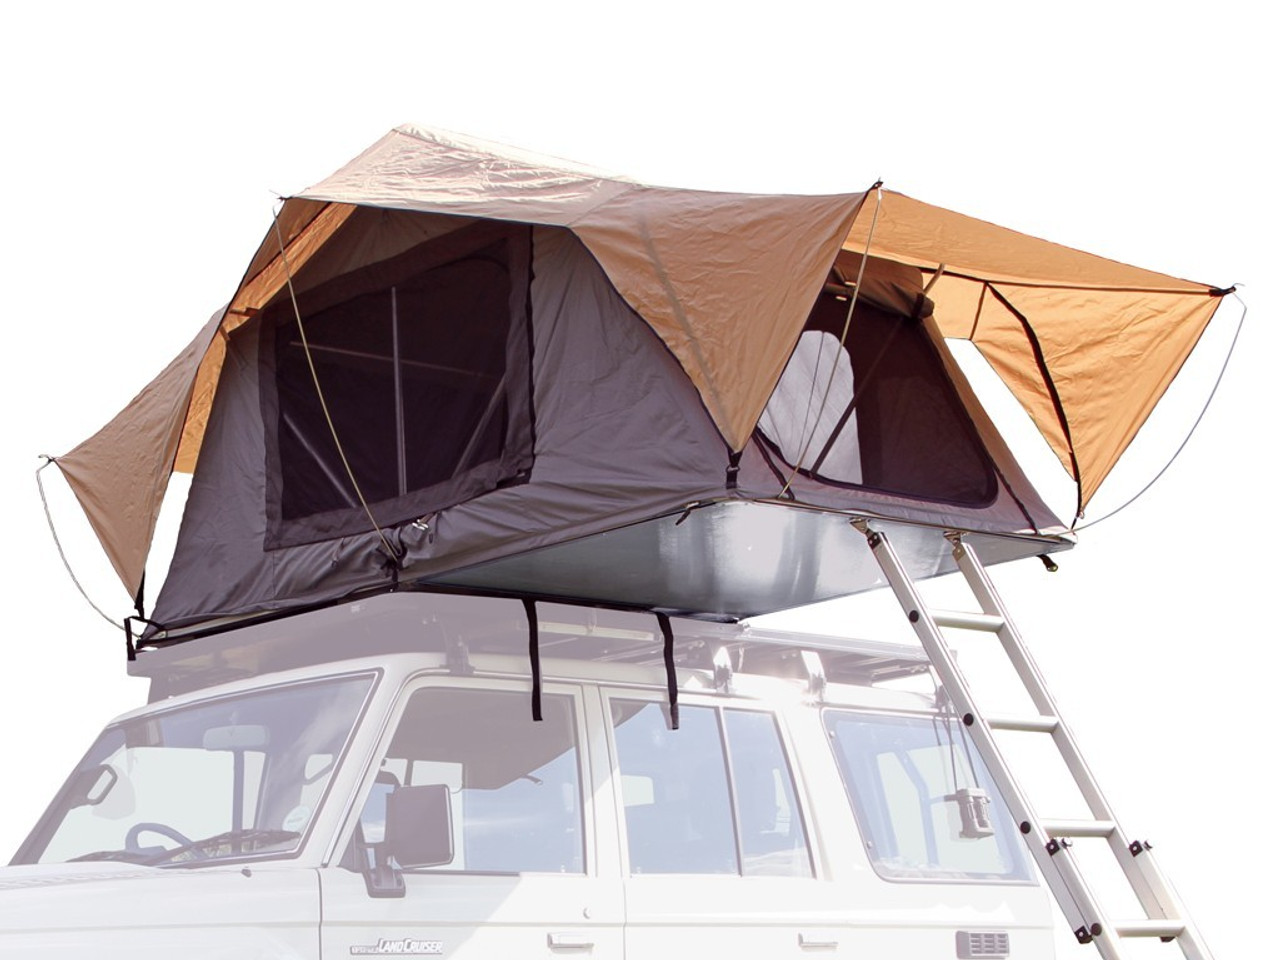 Roof Top Tent - Front Runner (TENT031)